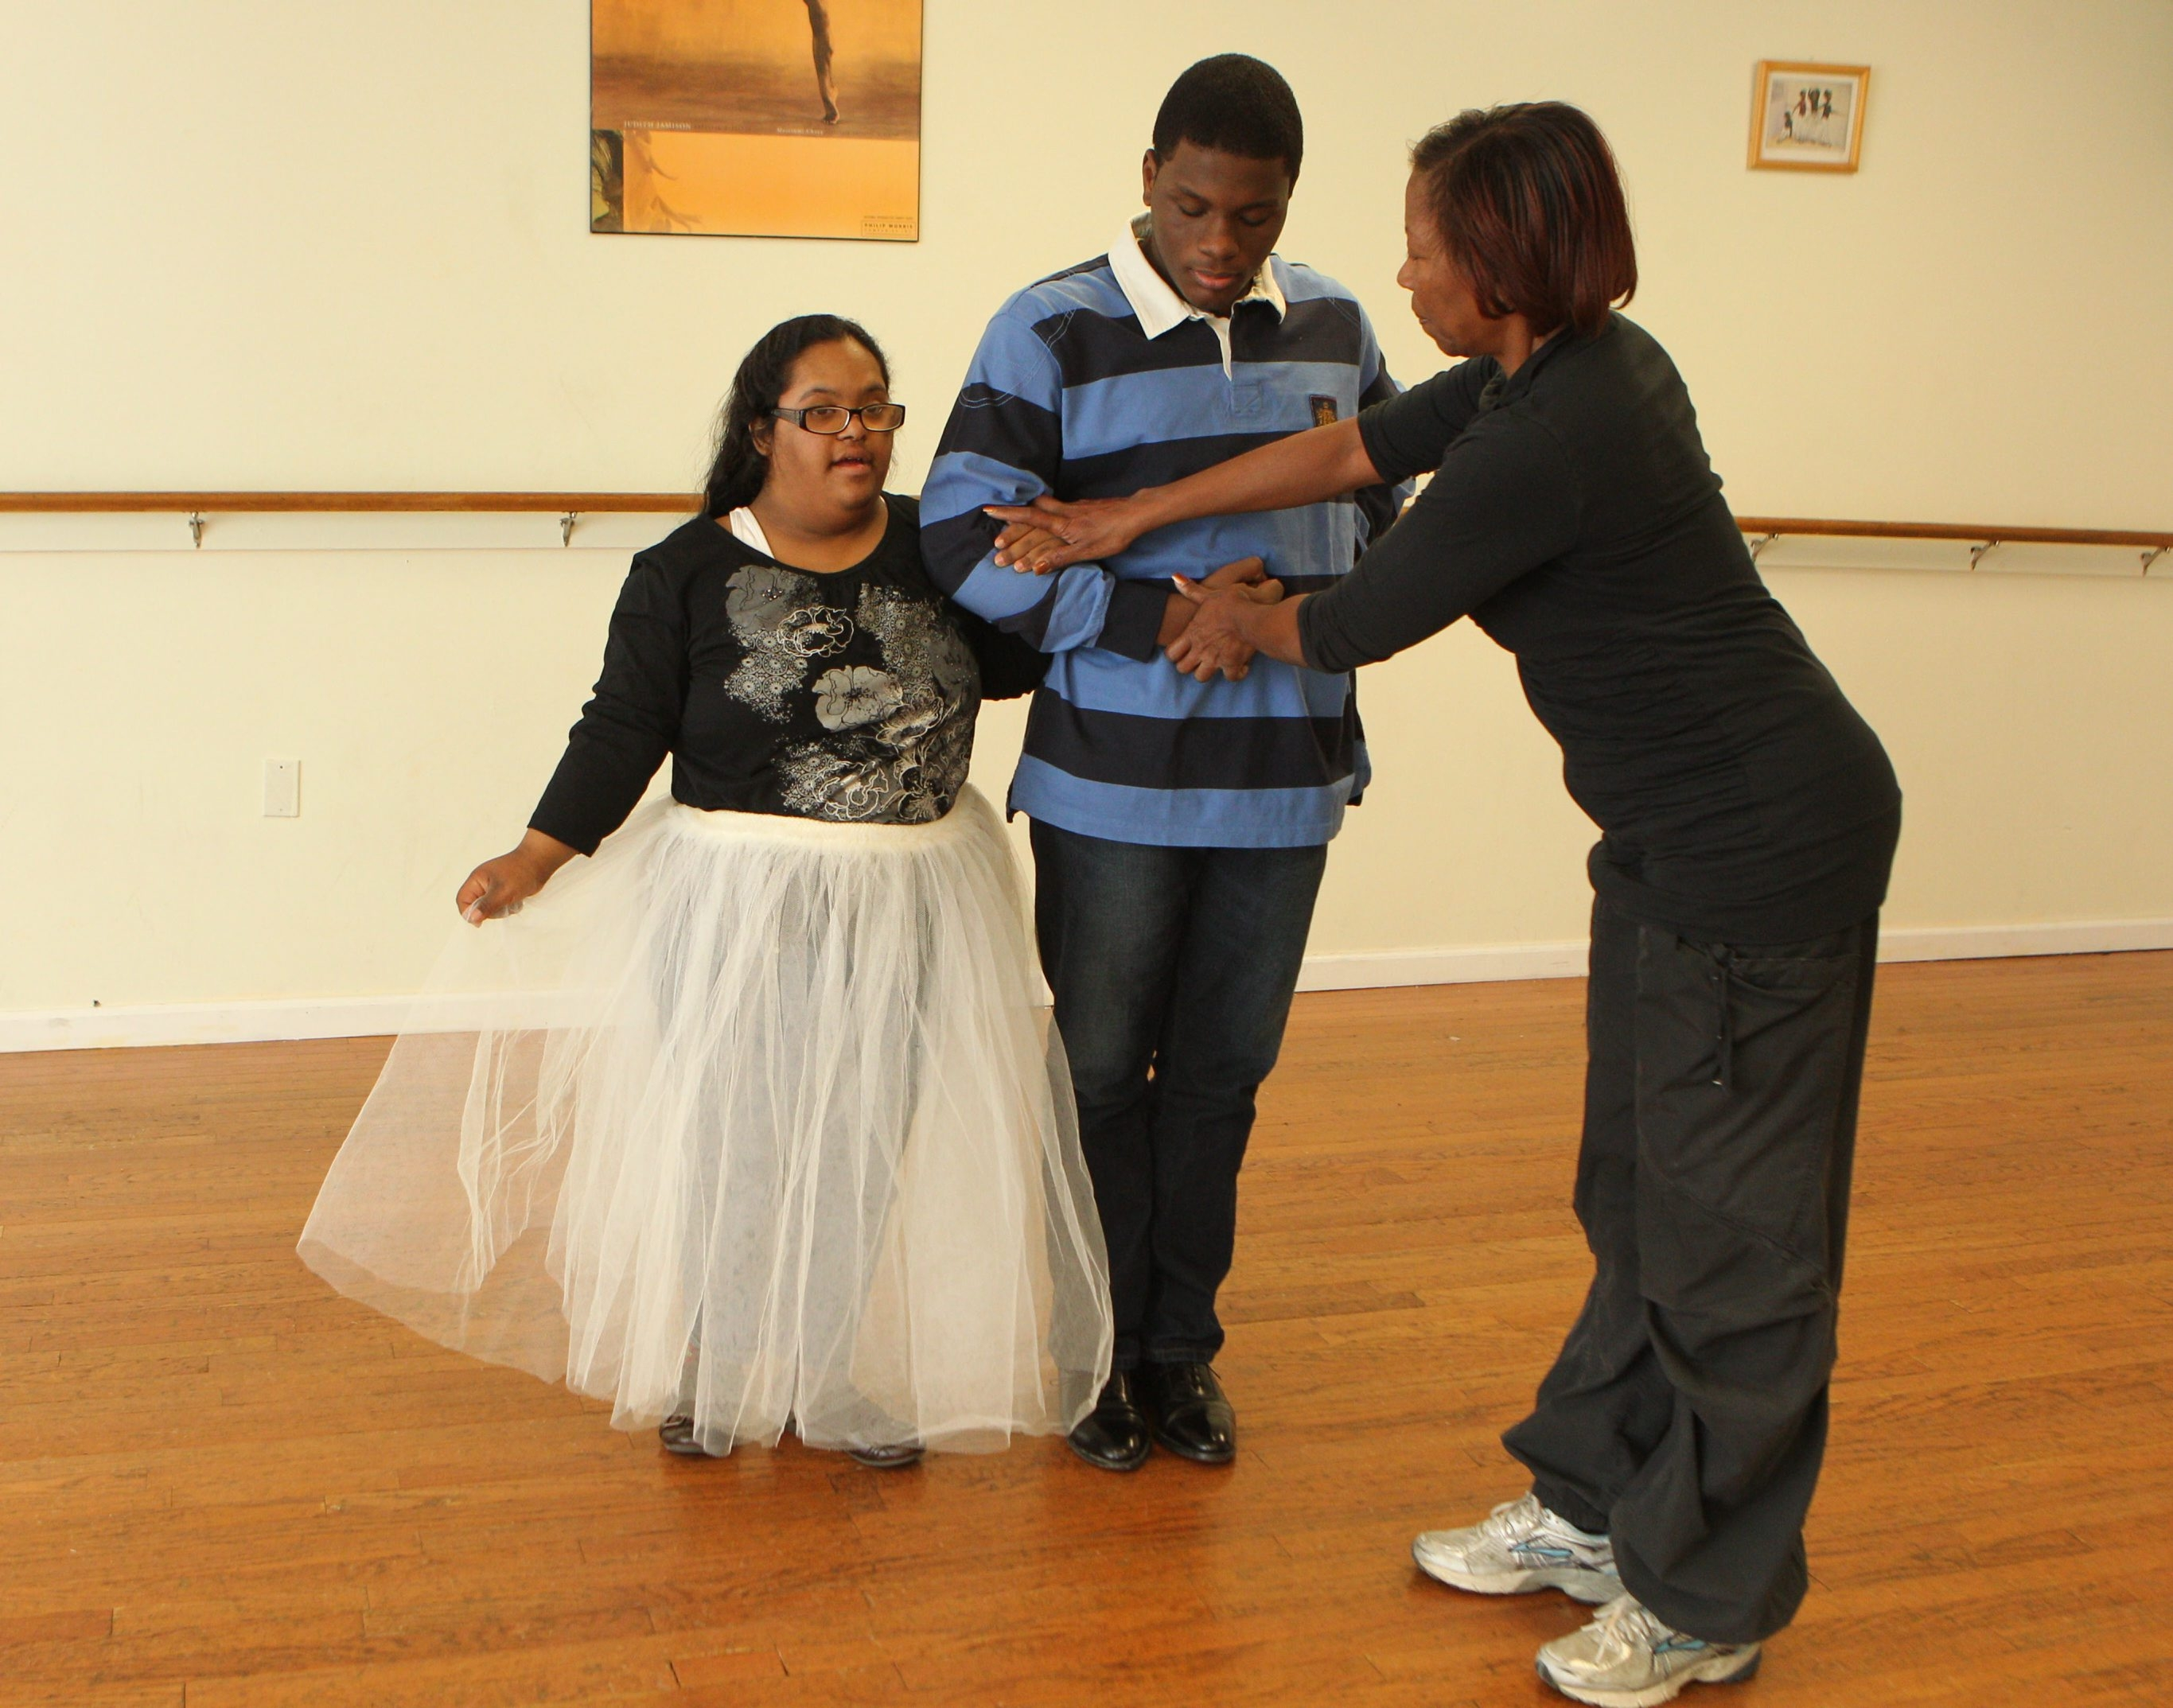 Barbara Glover, right, owner of Miss Barbara's School of Dance, teaches the waltz to Marriza Ayanna Evans, 18, left, and Nigel V. Jacobs, 14, who will attend the Debutante Ball on Saturday.